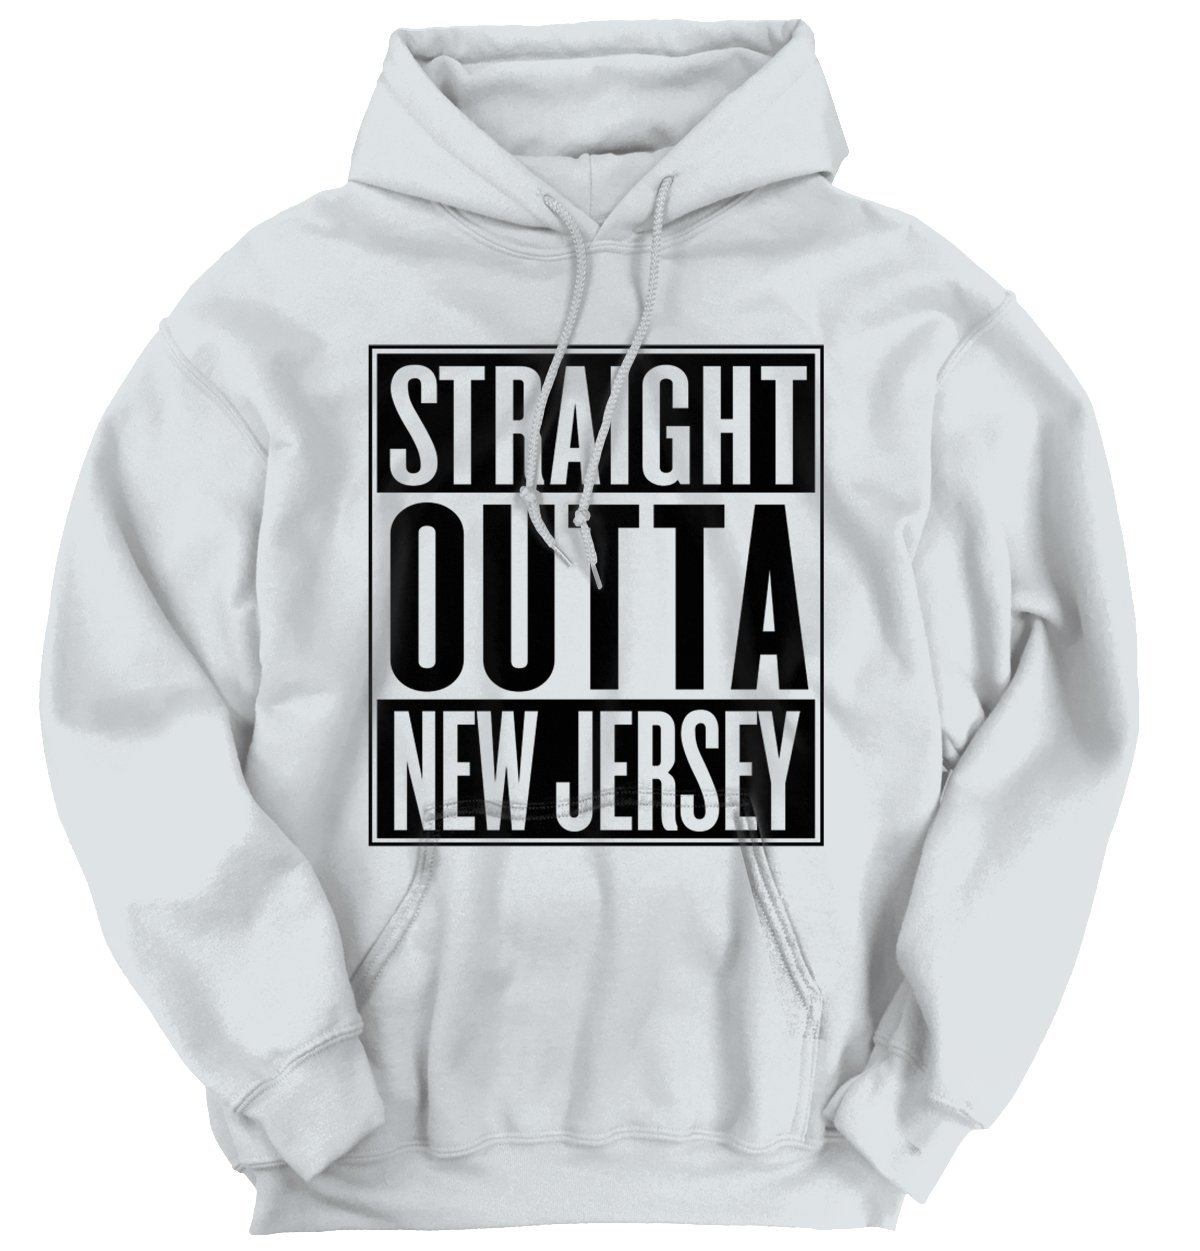 Straight Outta New Jersey State Funny Movie T Shirt Gift Ideas Hoodie Sweatshirt